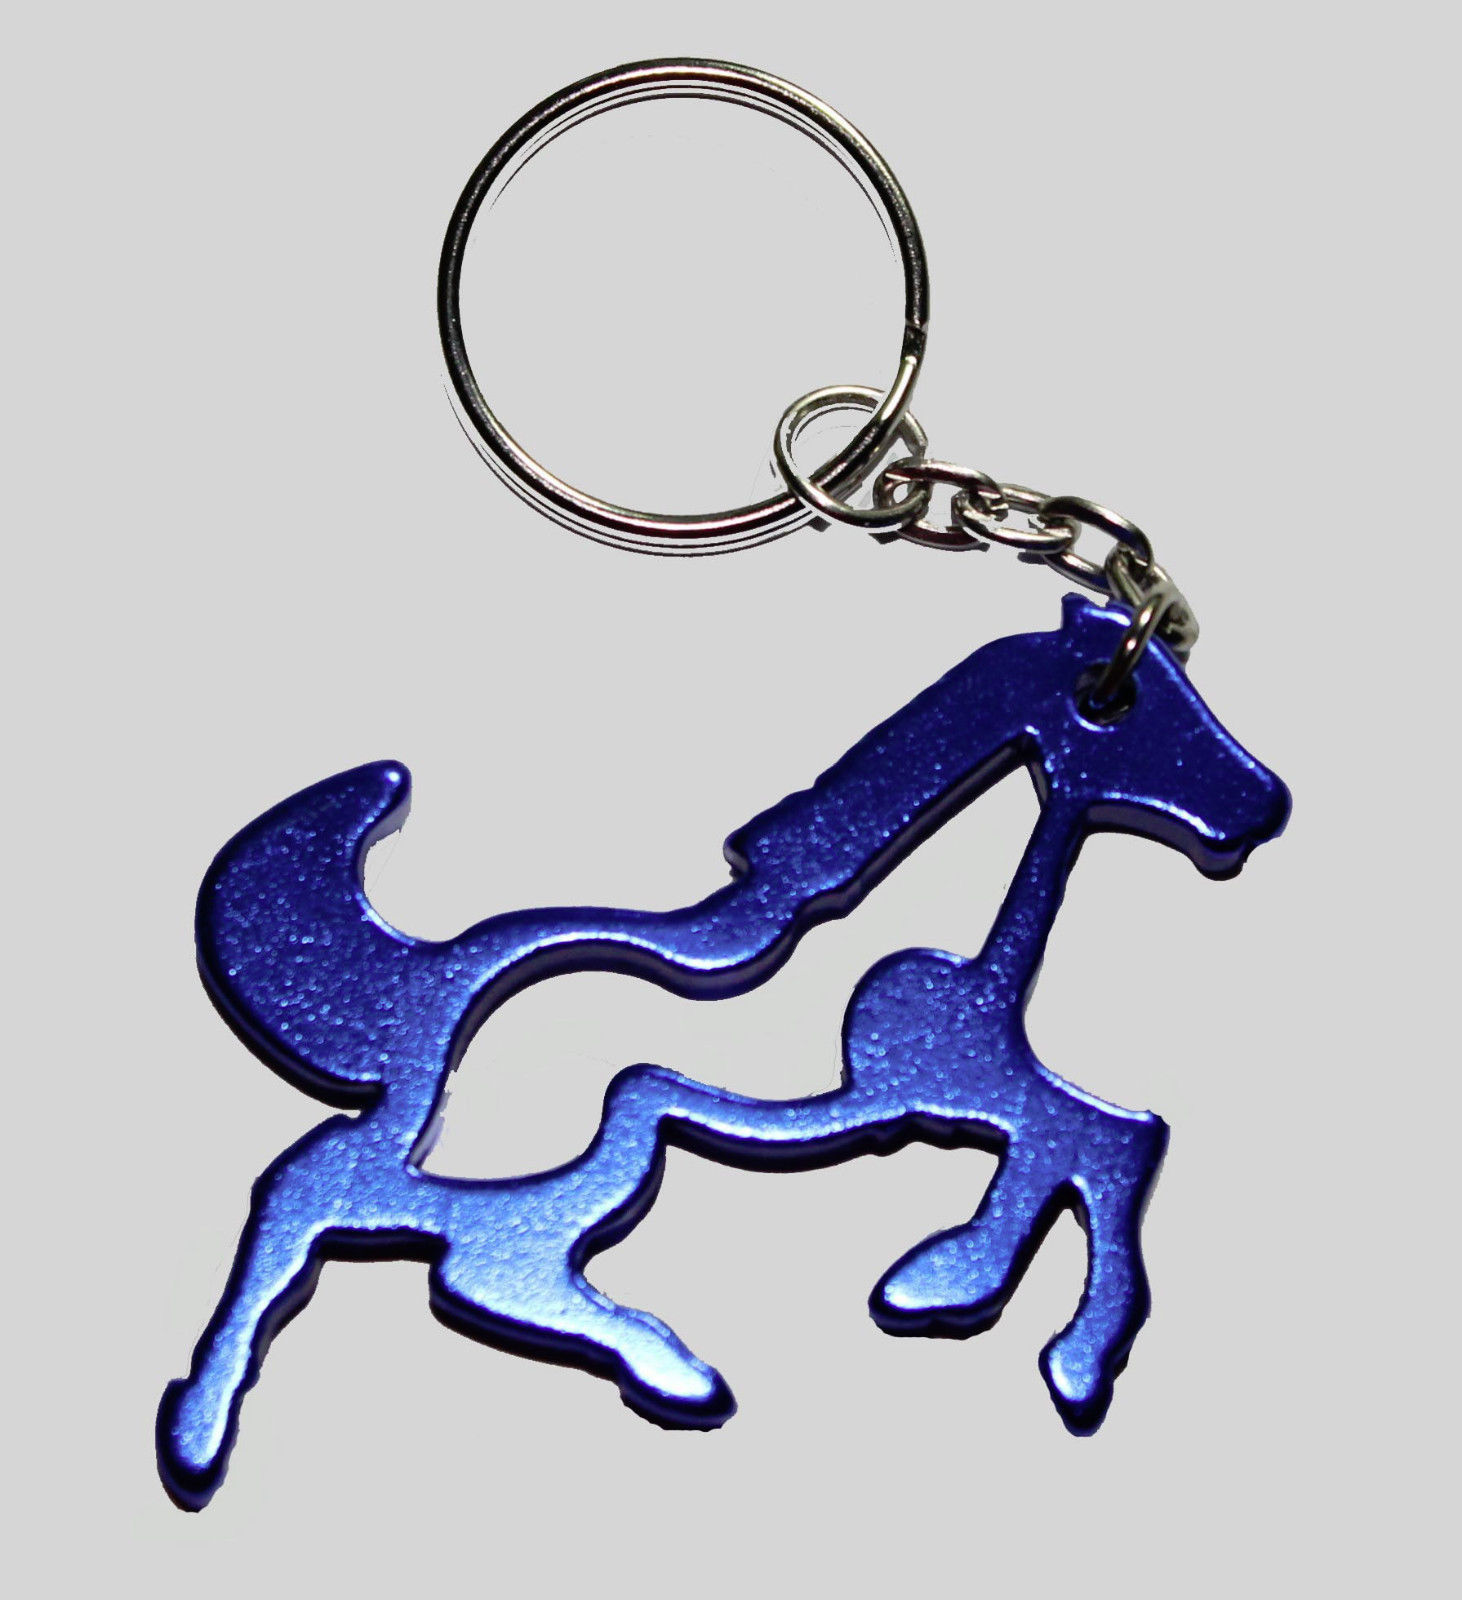 aluminum equine galloping horse key chain bottle opener choice of 5 colors key chains. Black Bedroom Furniture Sets. Home Design Ideas